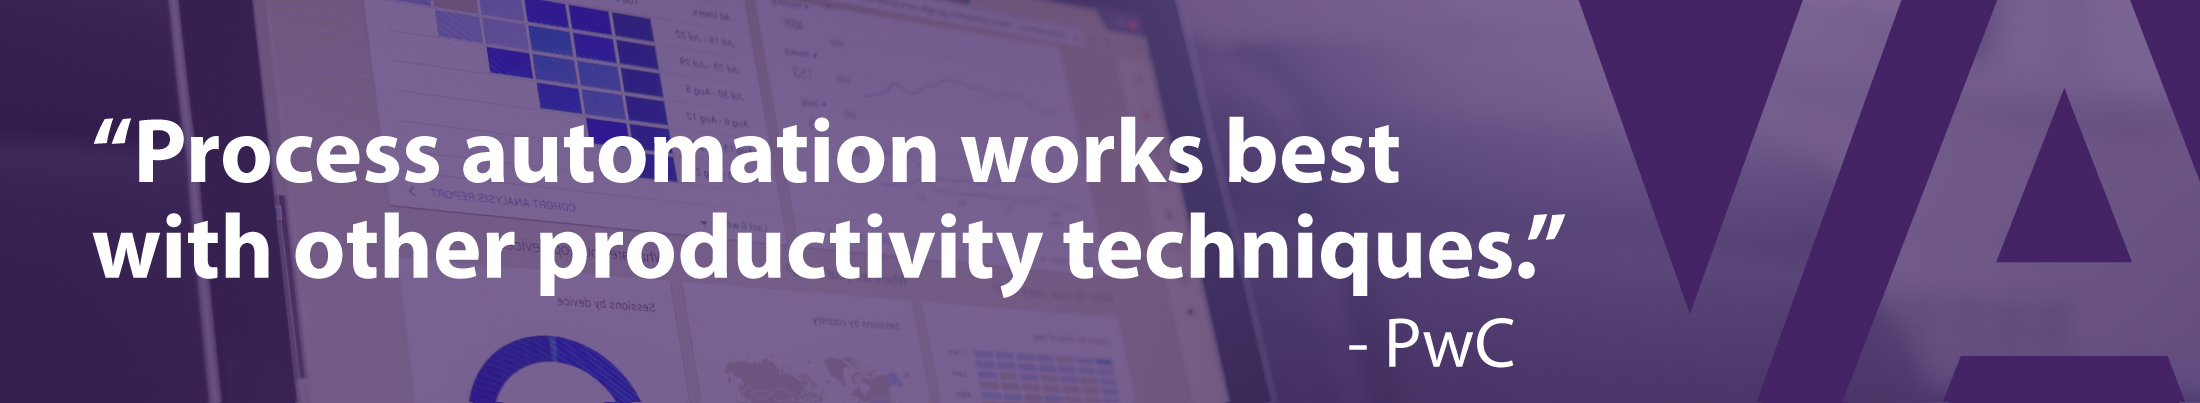 """""""Process automation works best with other productivity techniques."""" - PwC"""